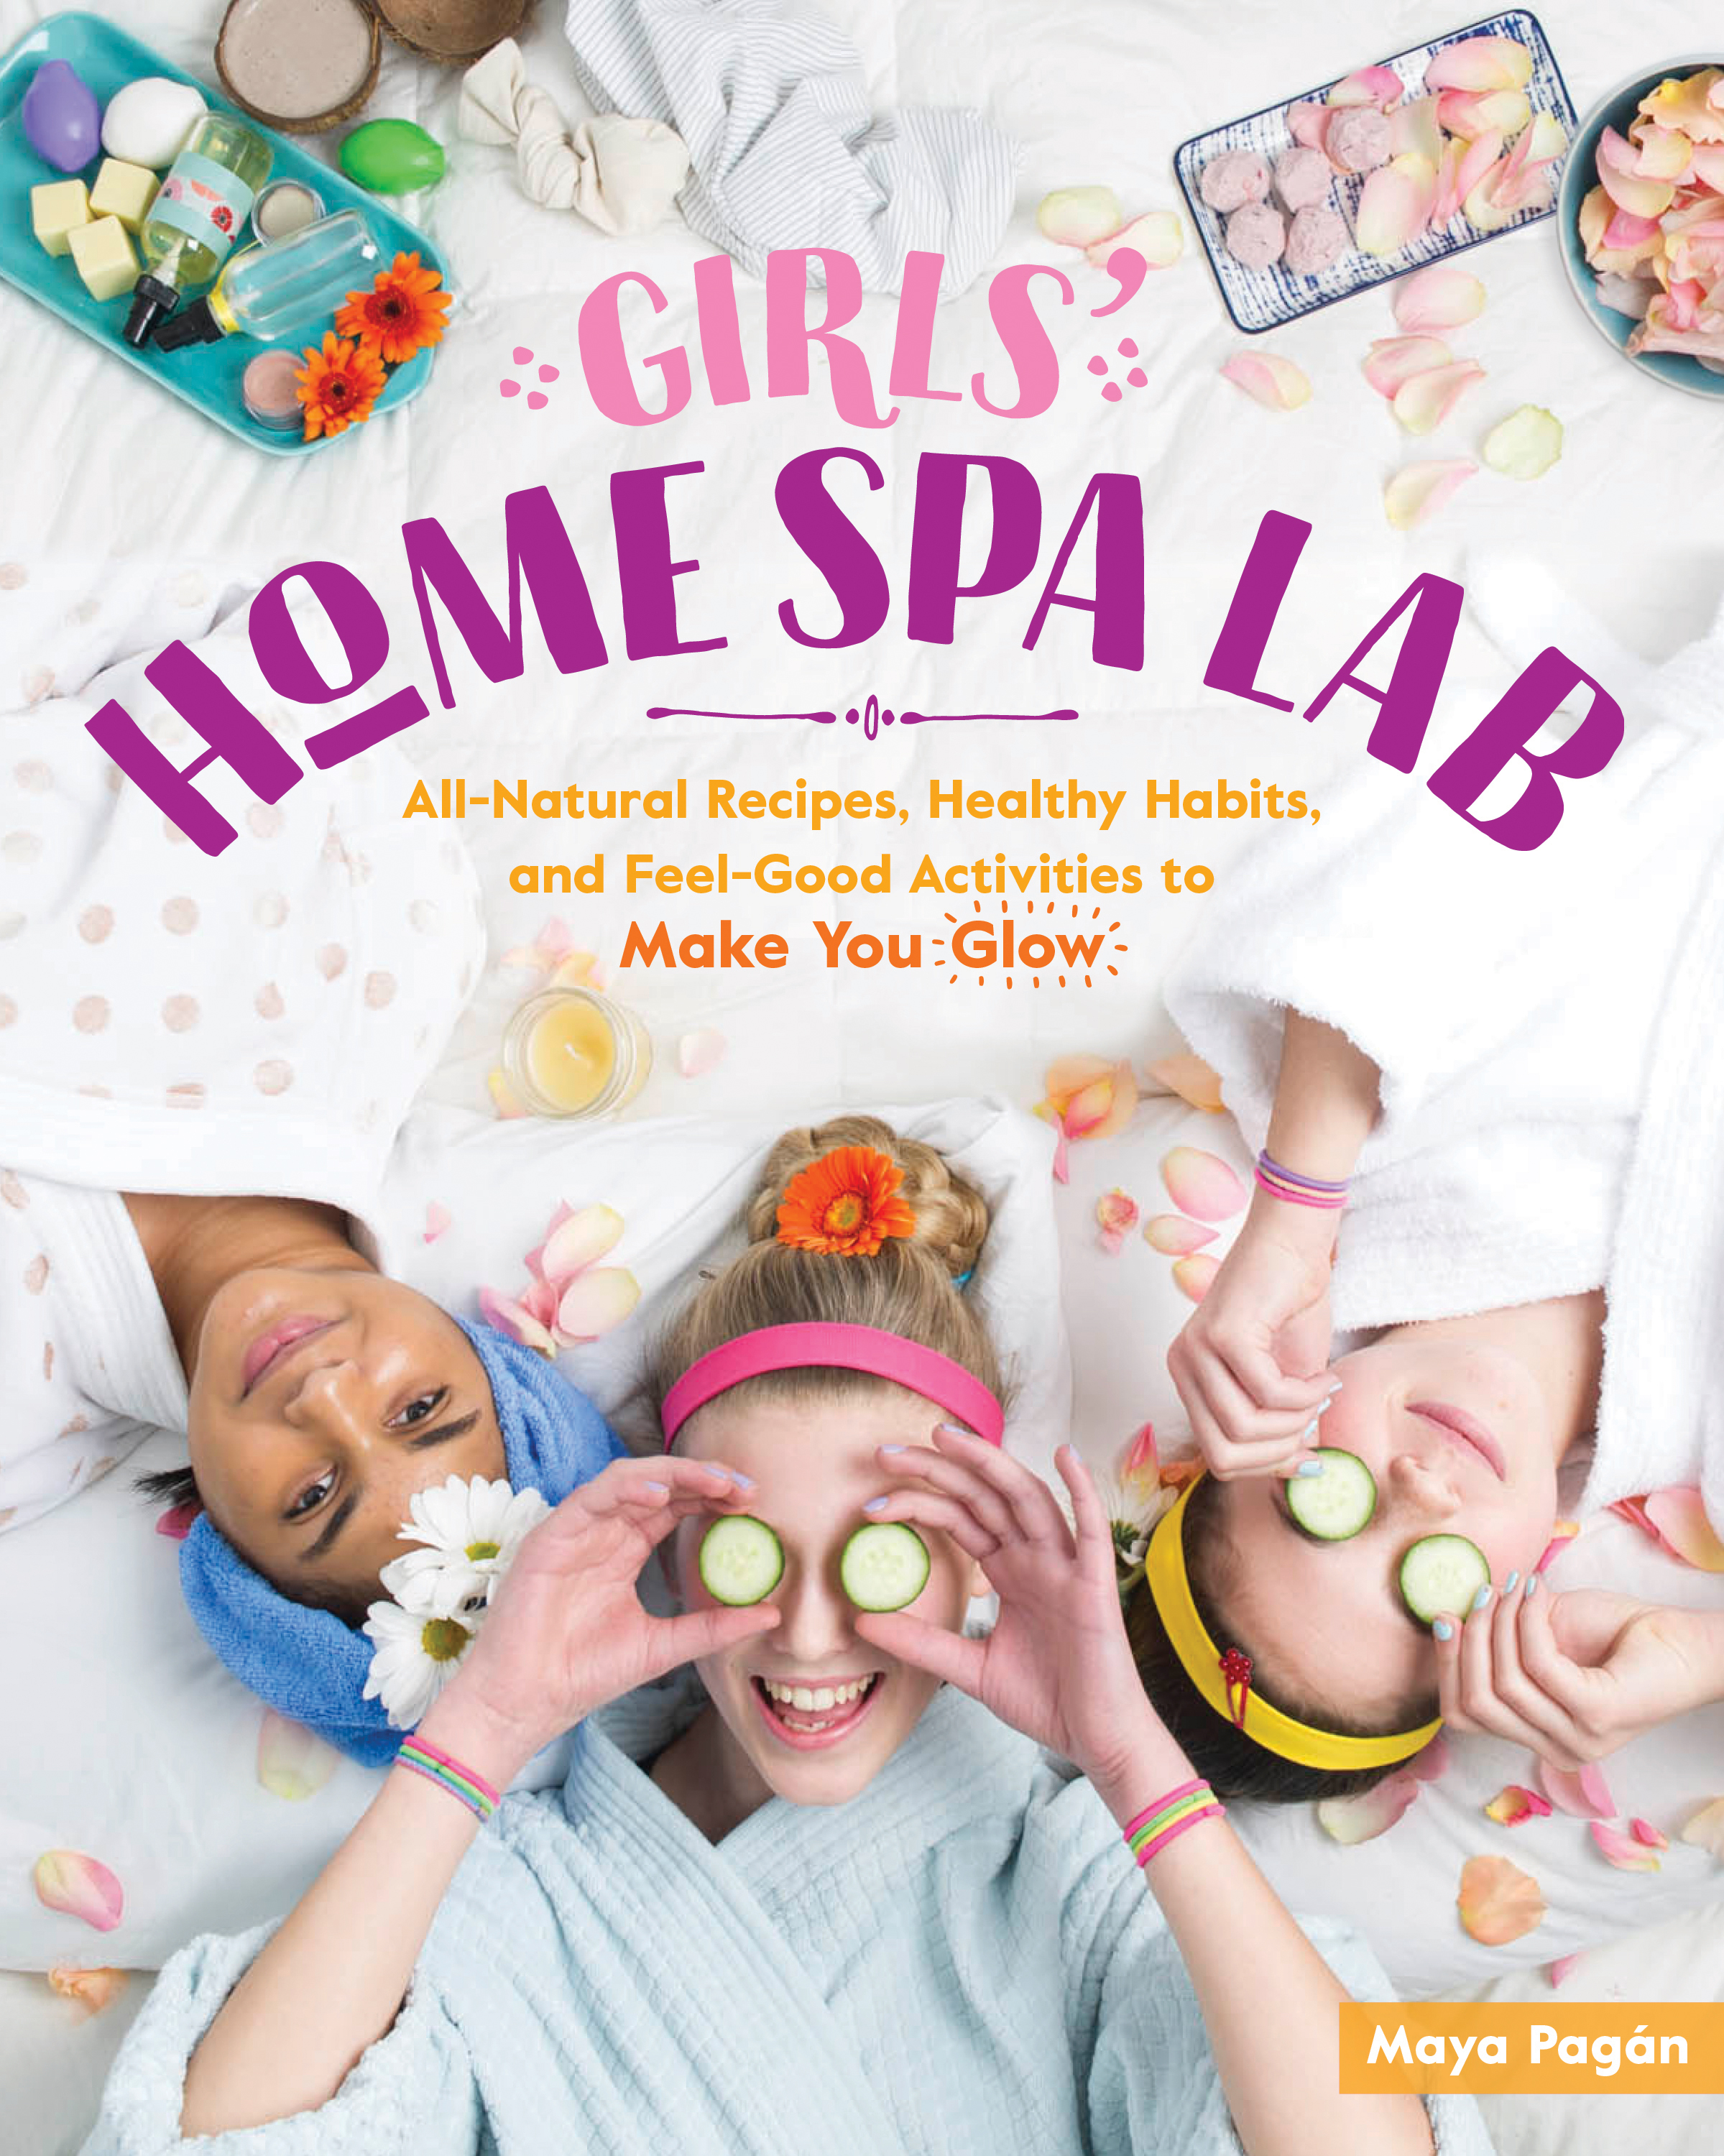 Girls' Home Spa Lab All-Natural Recipes, Healthy Habits, and Feel-Good Activities to Make You Glow - Maya Pagán